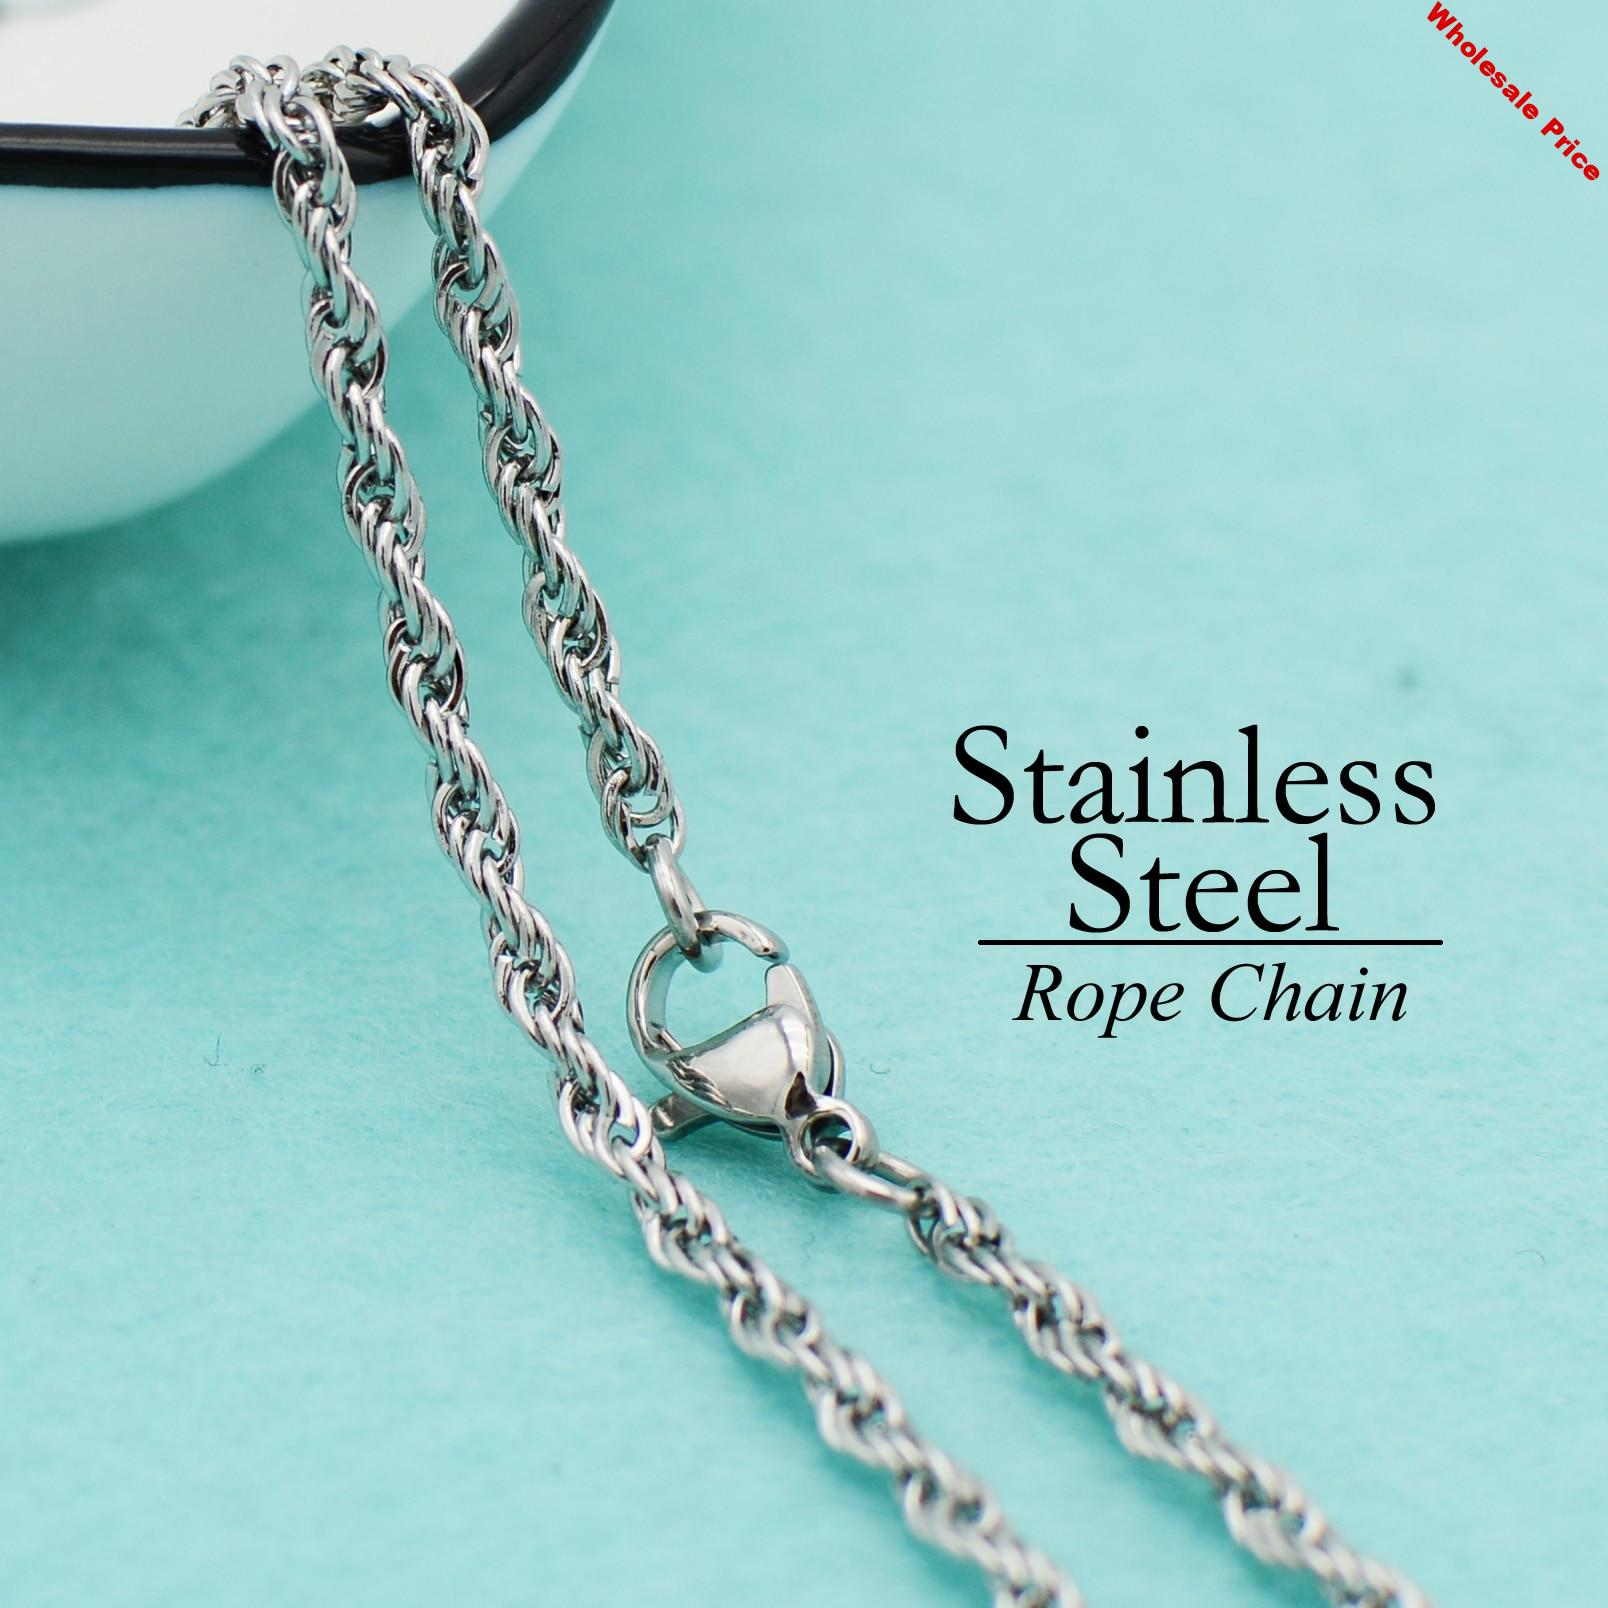 50 pcs- Stainless Steel Necklace